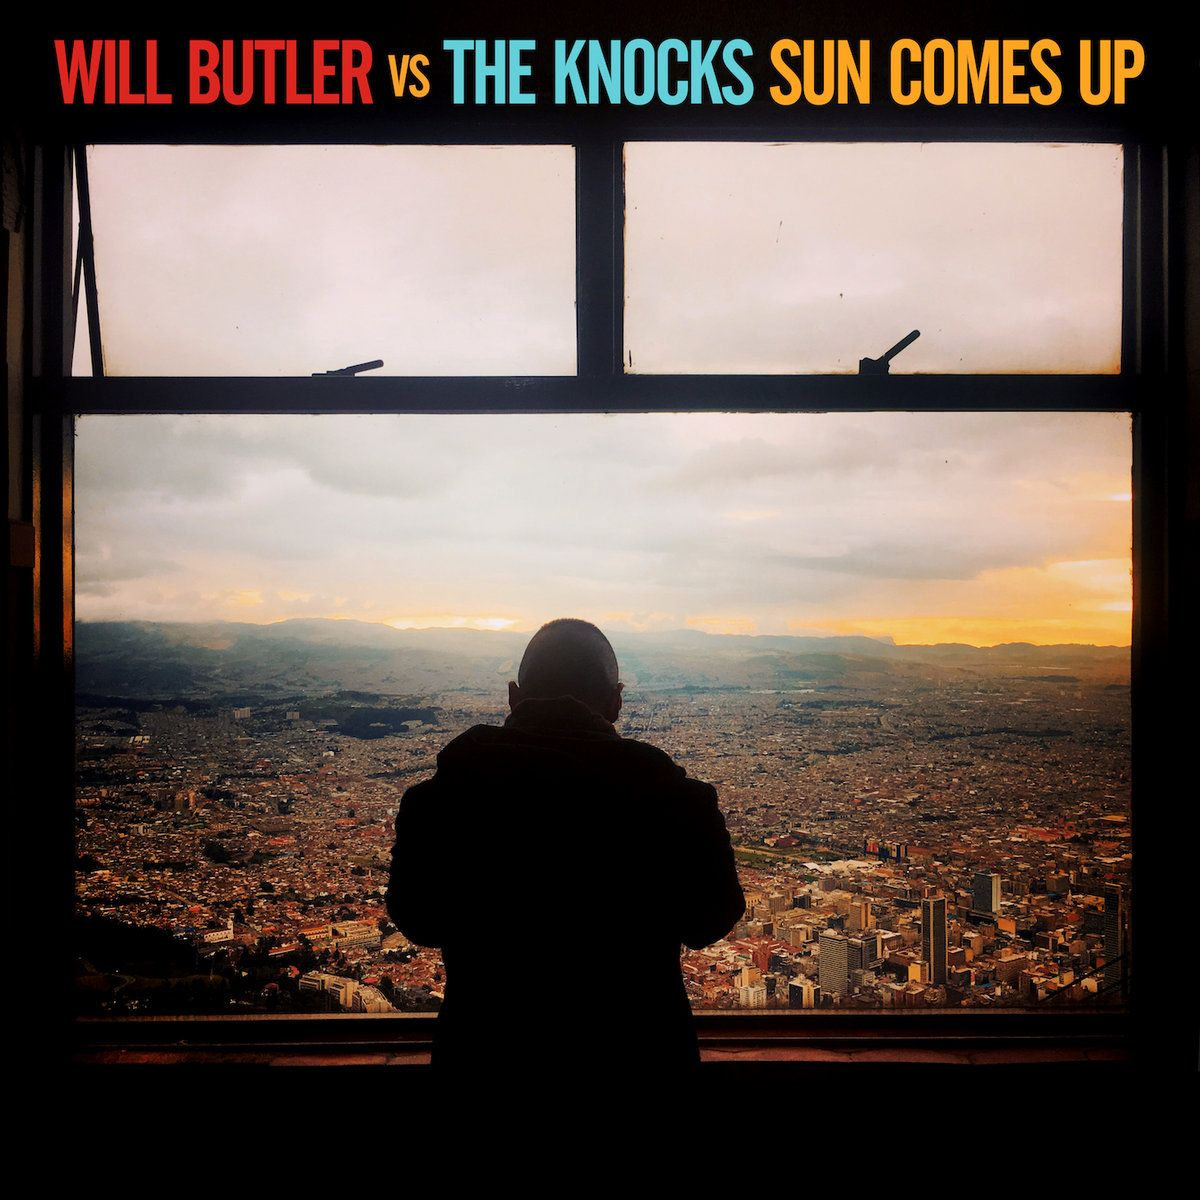 The Knocks, Will Butler (Arcade Fire) - Sun Comes Up